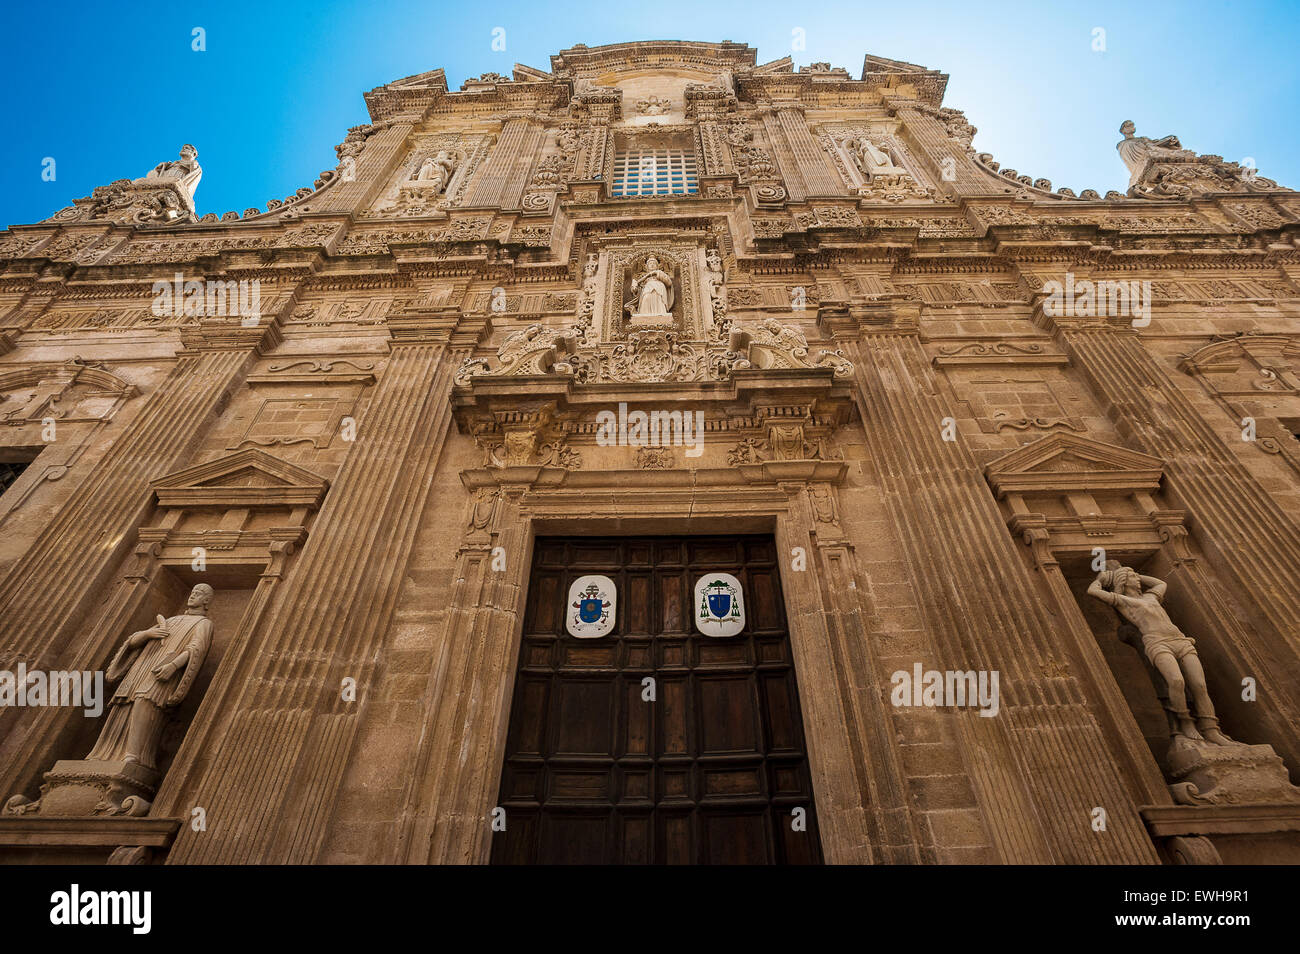 Apulia Salento Gallipoli, Cathedral of S.Agata - Stock Image